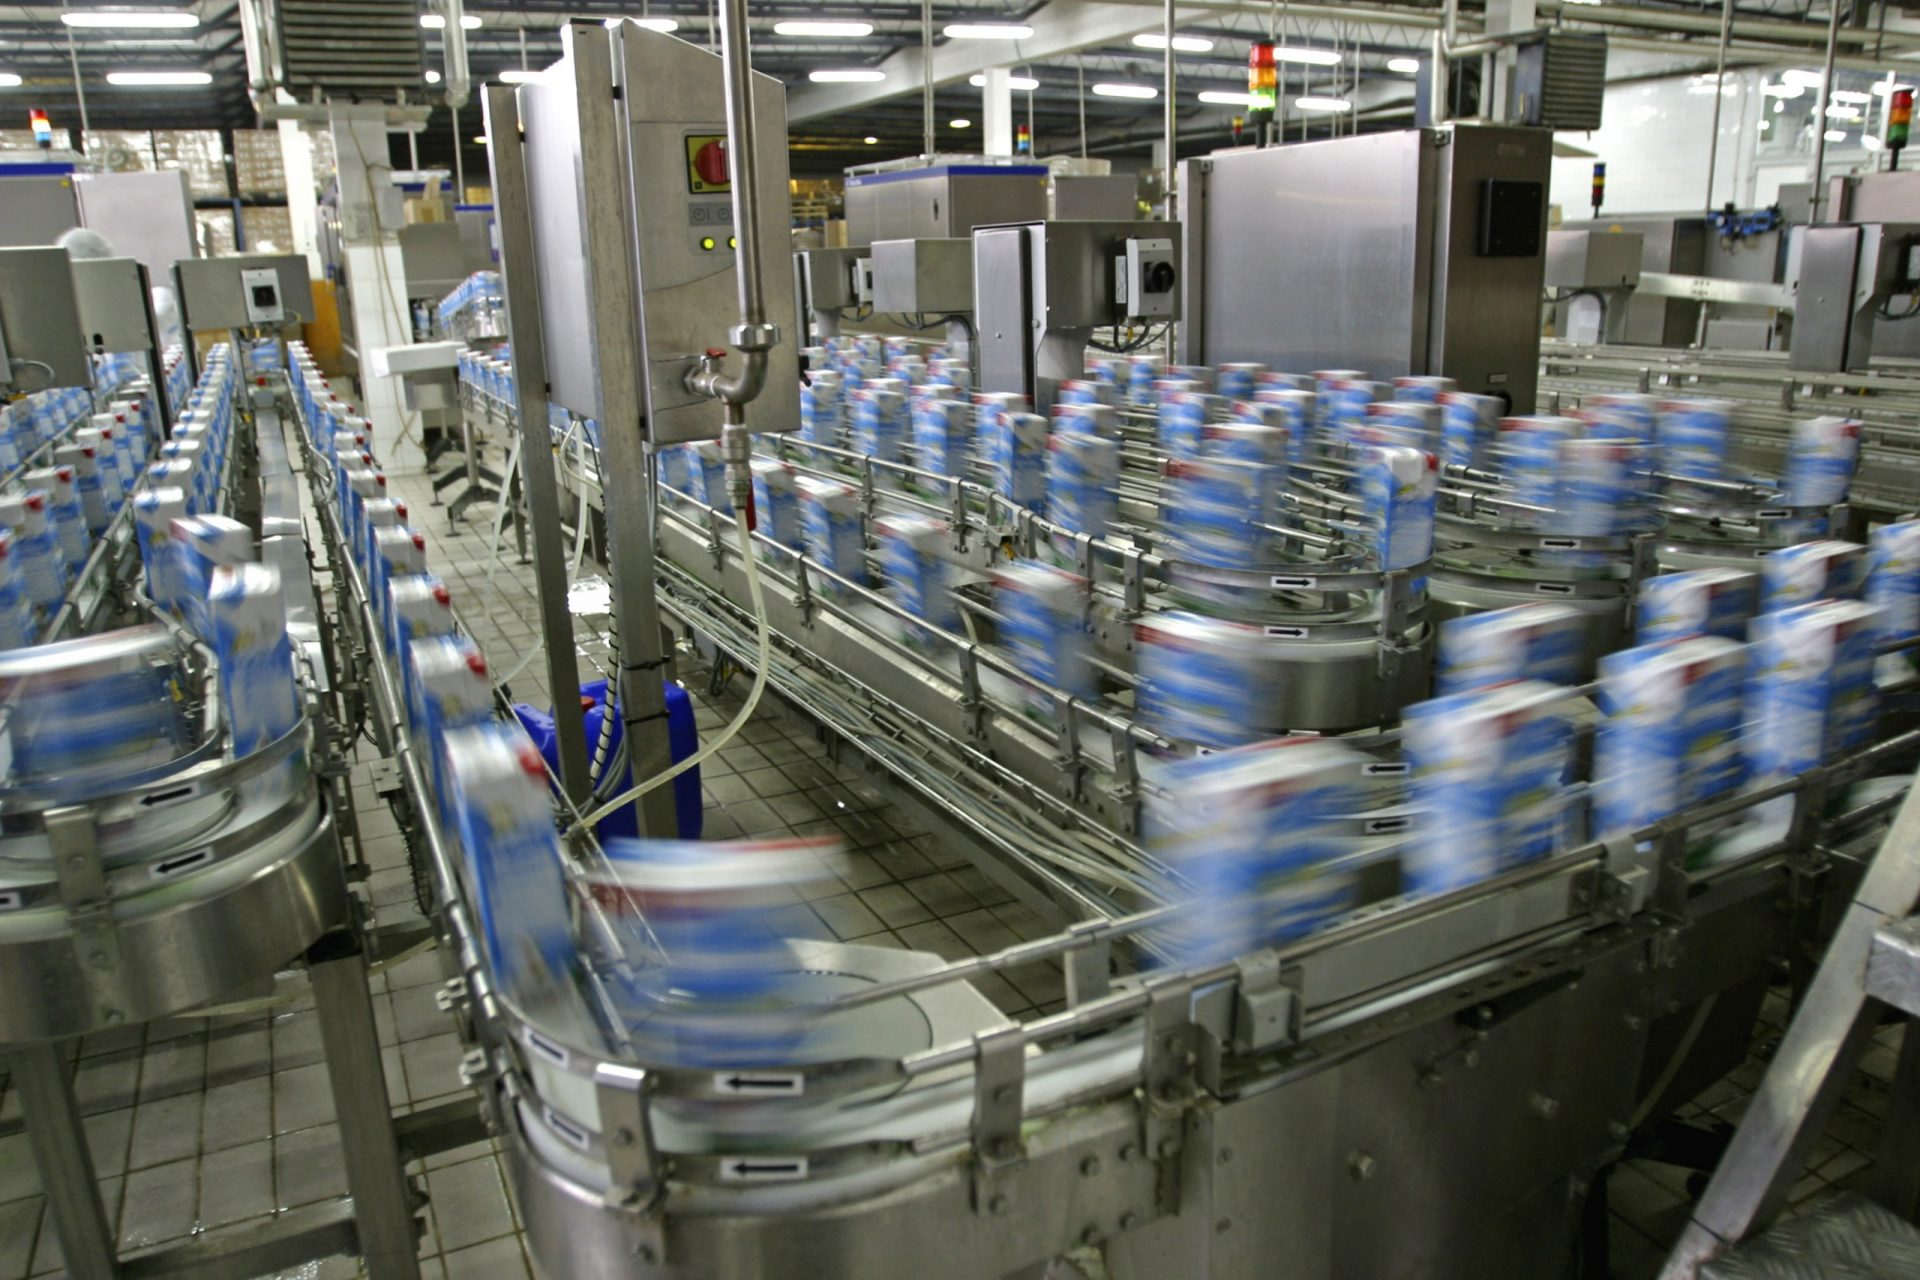 food and beverage industry serviced by Rolcon